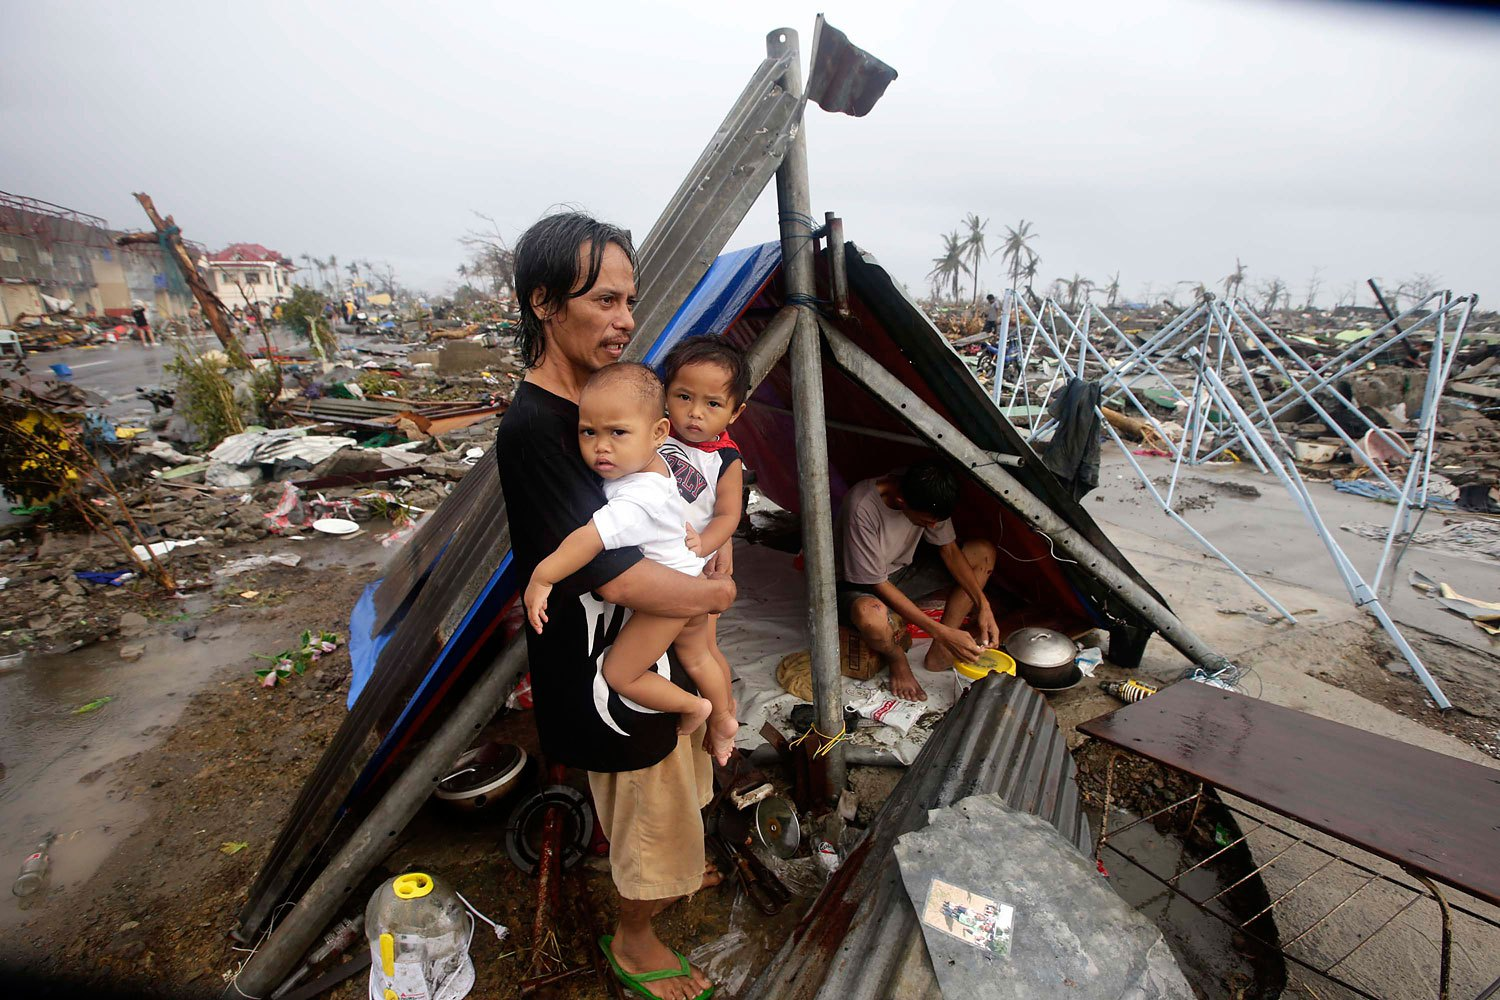 A Filipino father and his children wait for food relief outside their makeshift tent in the supertyphoon-devastated city of Tacloban, in the Philippines' Leyte province, on Nov. 10, 2013